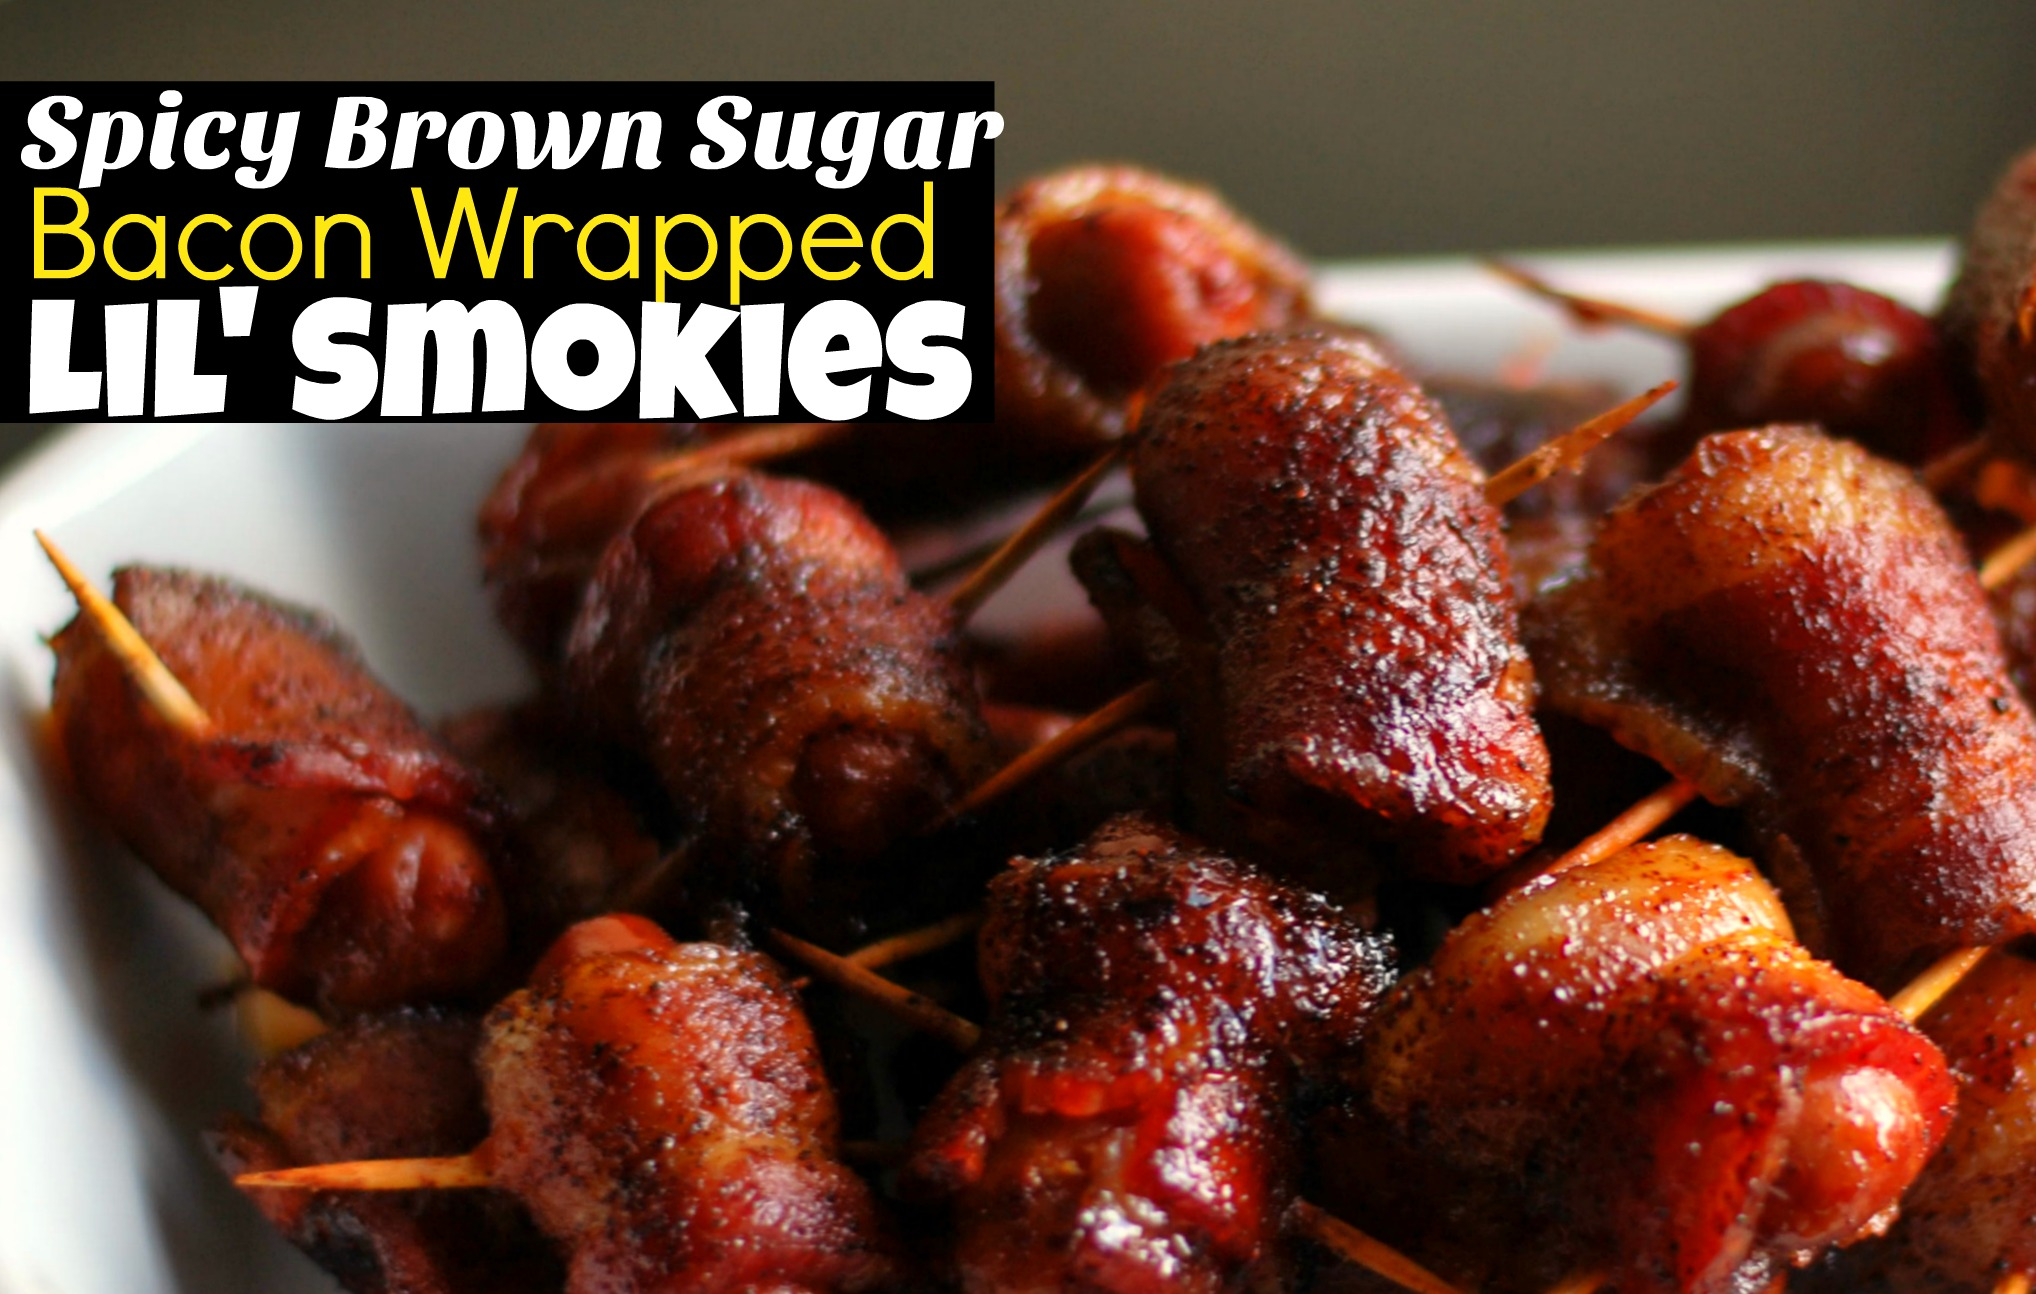 Spicy Brown Sugar Bacon Wrapped Lil' Smokies